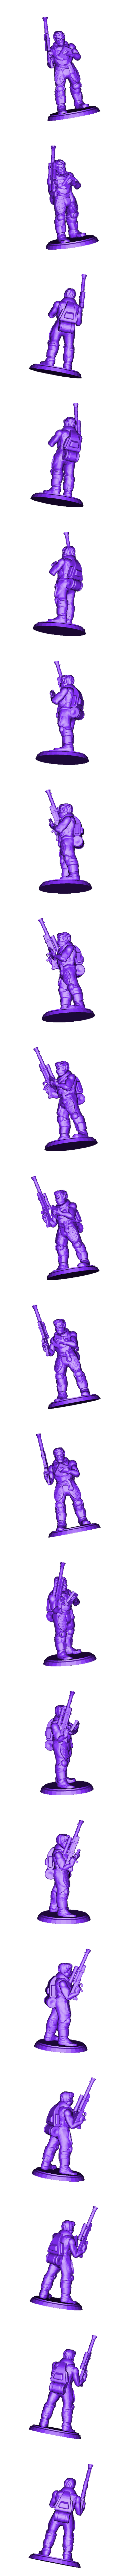 cyber_commando_by_backer303.stl Download free STL file Fantasy Mini Collection (multiple poses) • 3D printable object, stockto